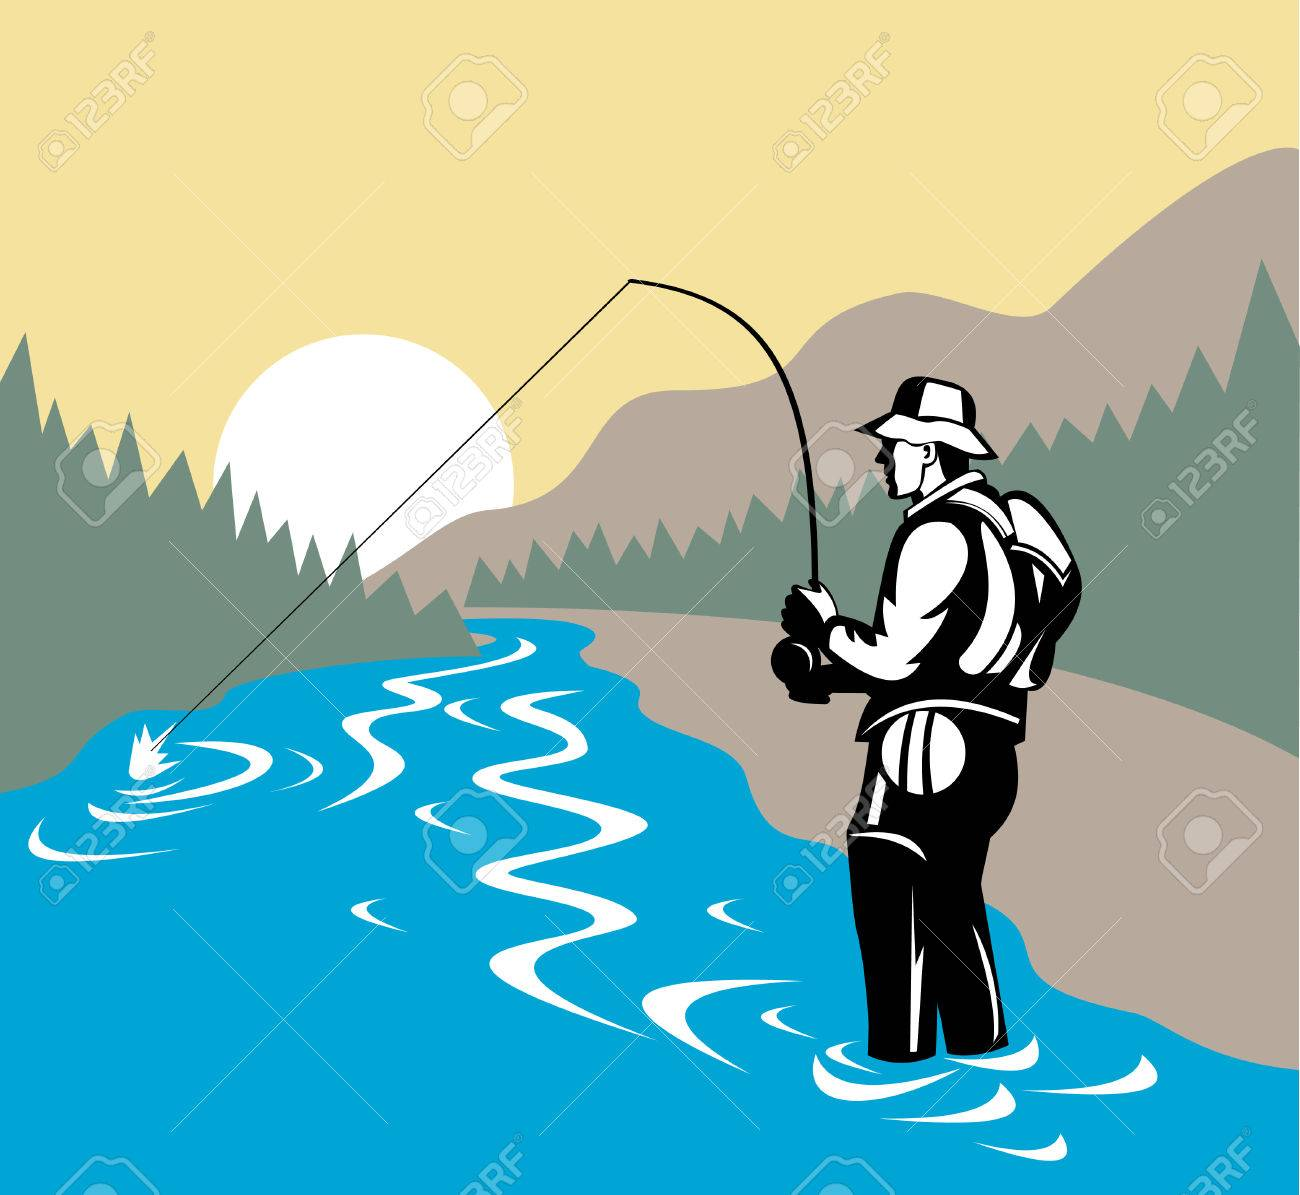 Fly fisherman with mountains in background Stock Vector - 4455933